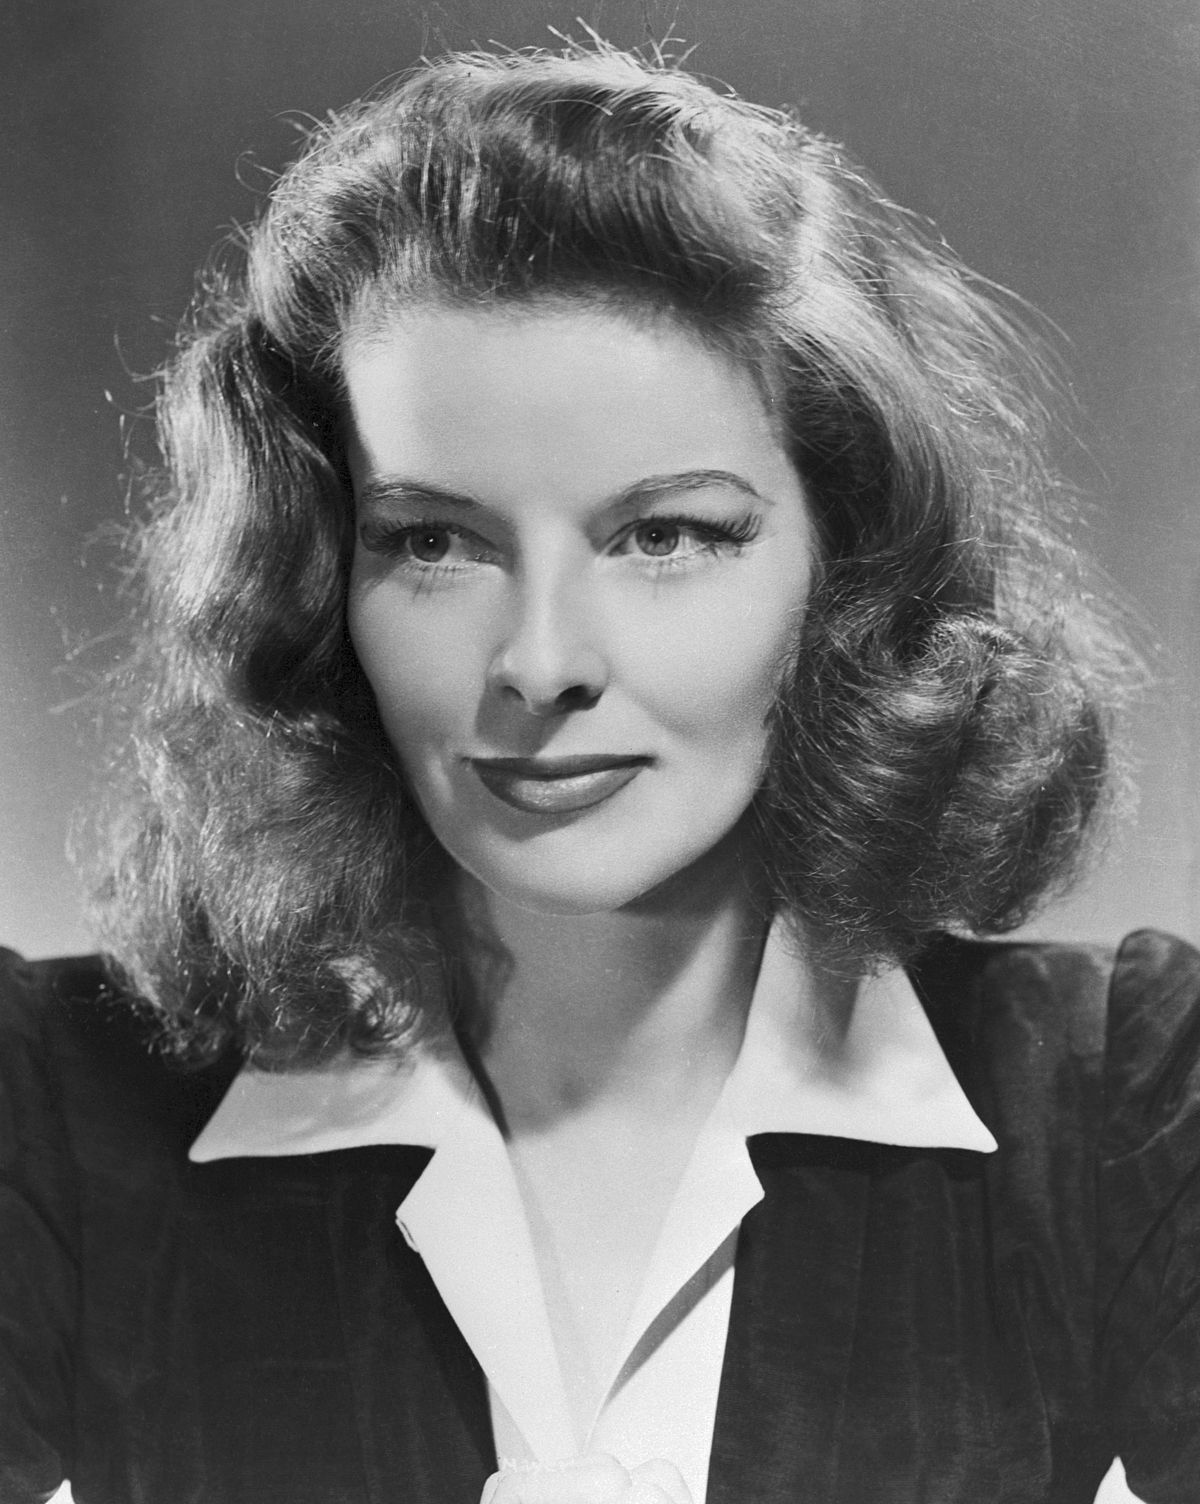 Katharine Hepburn on oscar bingo games